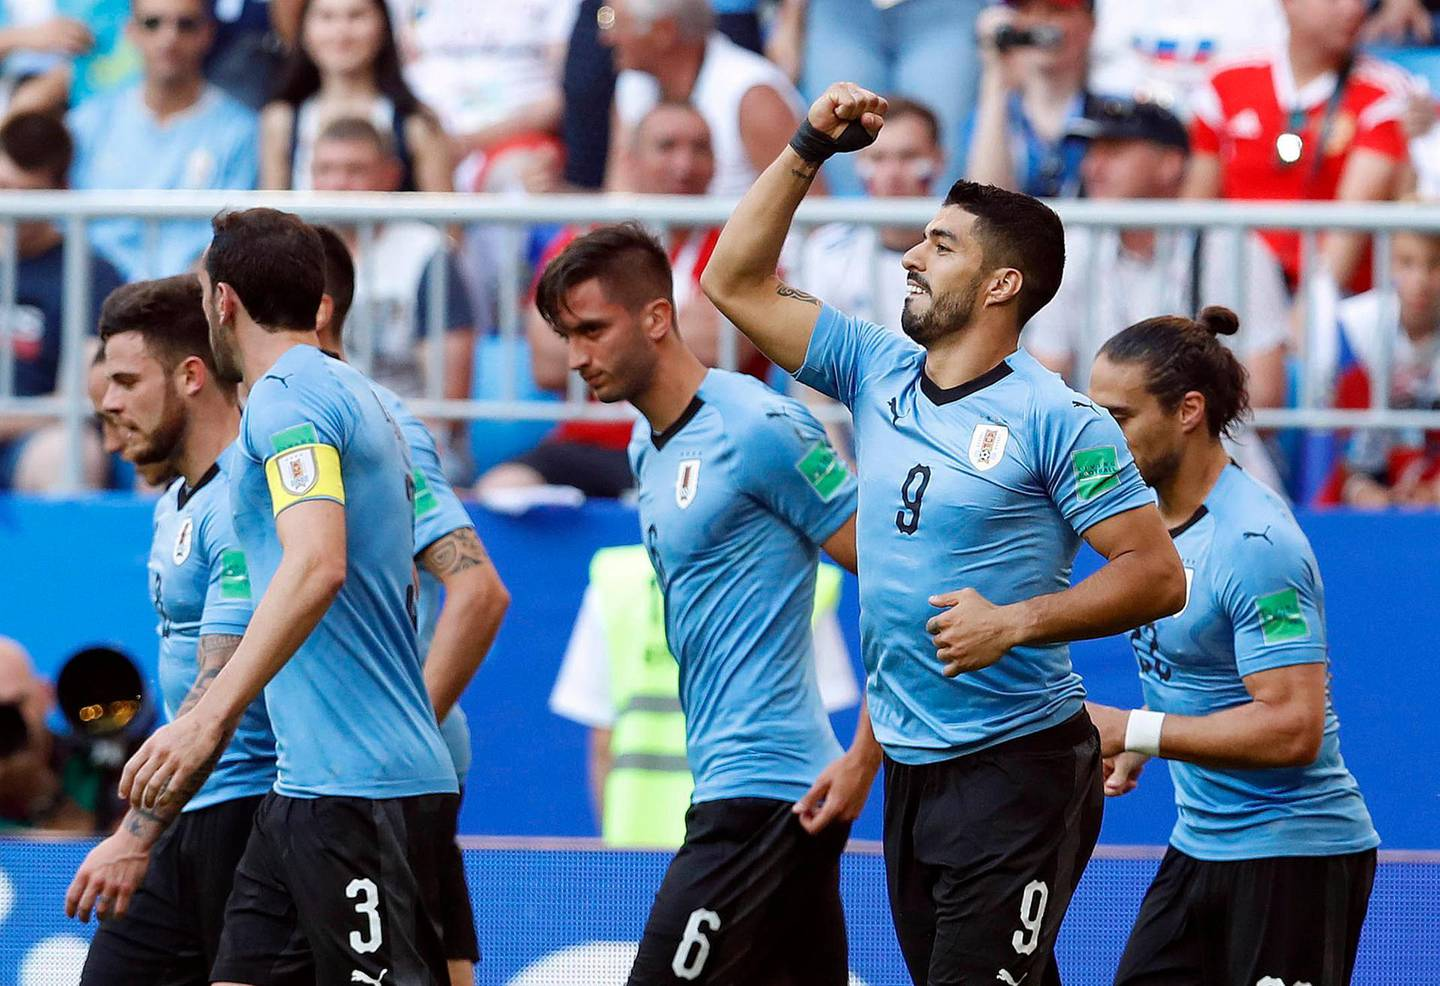 Uruguay's Luis Suarez, second from right, celebrates after scoring his side's first goal during the group A match between Uruguay and Russia at the 2018 soccer World Cup at the Samara Arena in Samara, Russia, Monday, June 25, 2018. (AP Photo/Hassan Ammar)